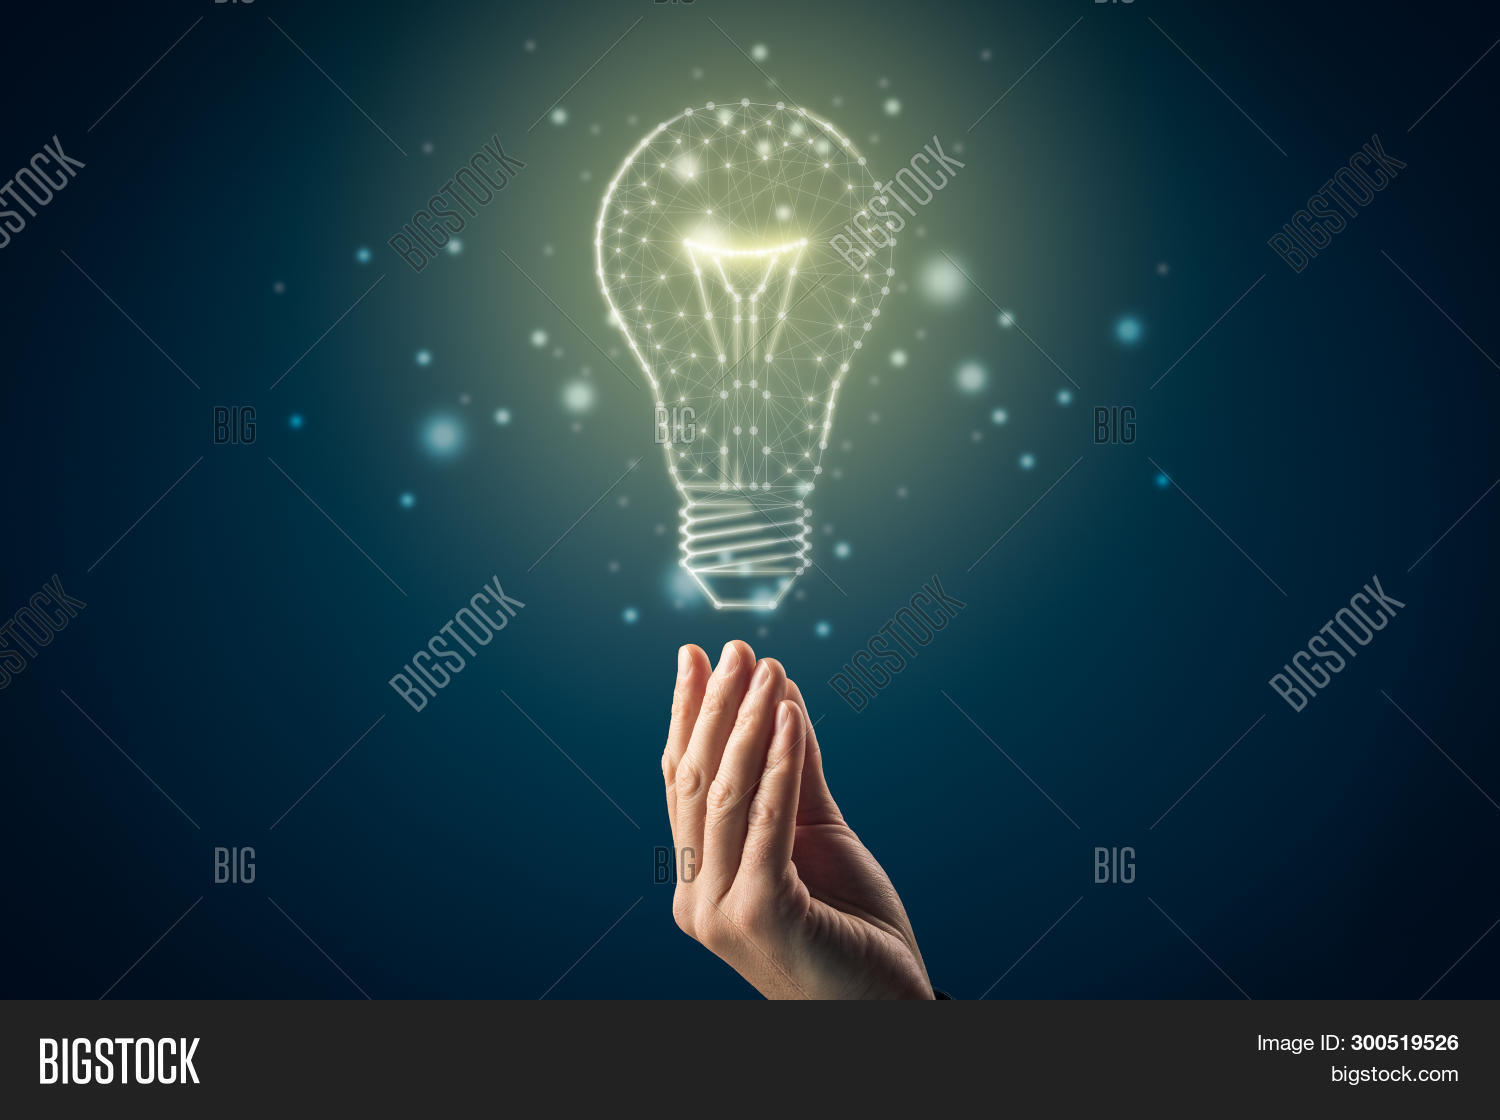 Turn On Creativity, Idea And Intelligence Concepts. Hand And Graphics Light Bulb - Symbols Of Idea,